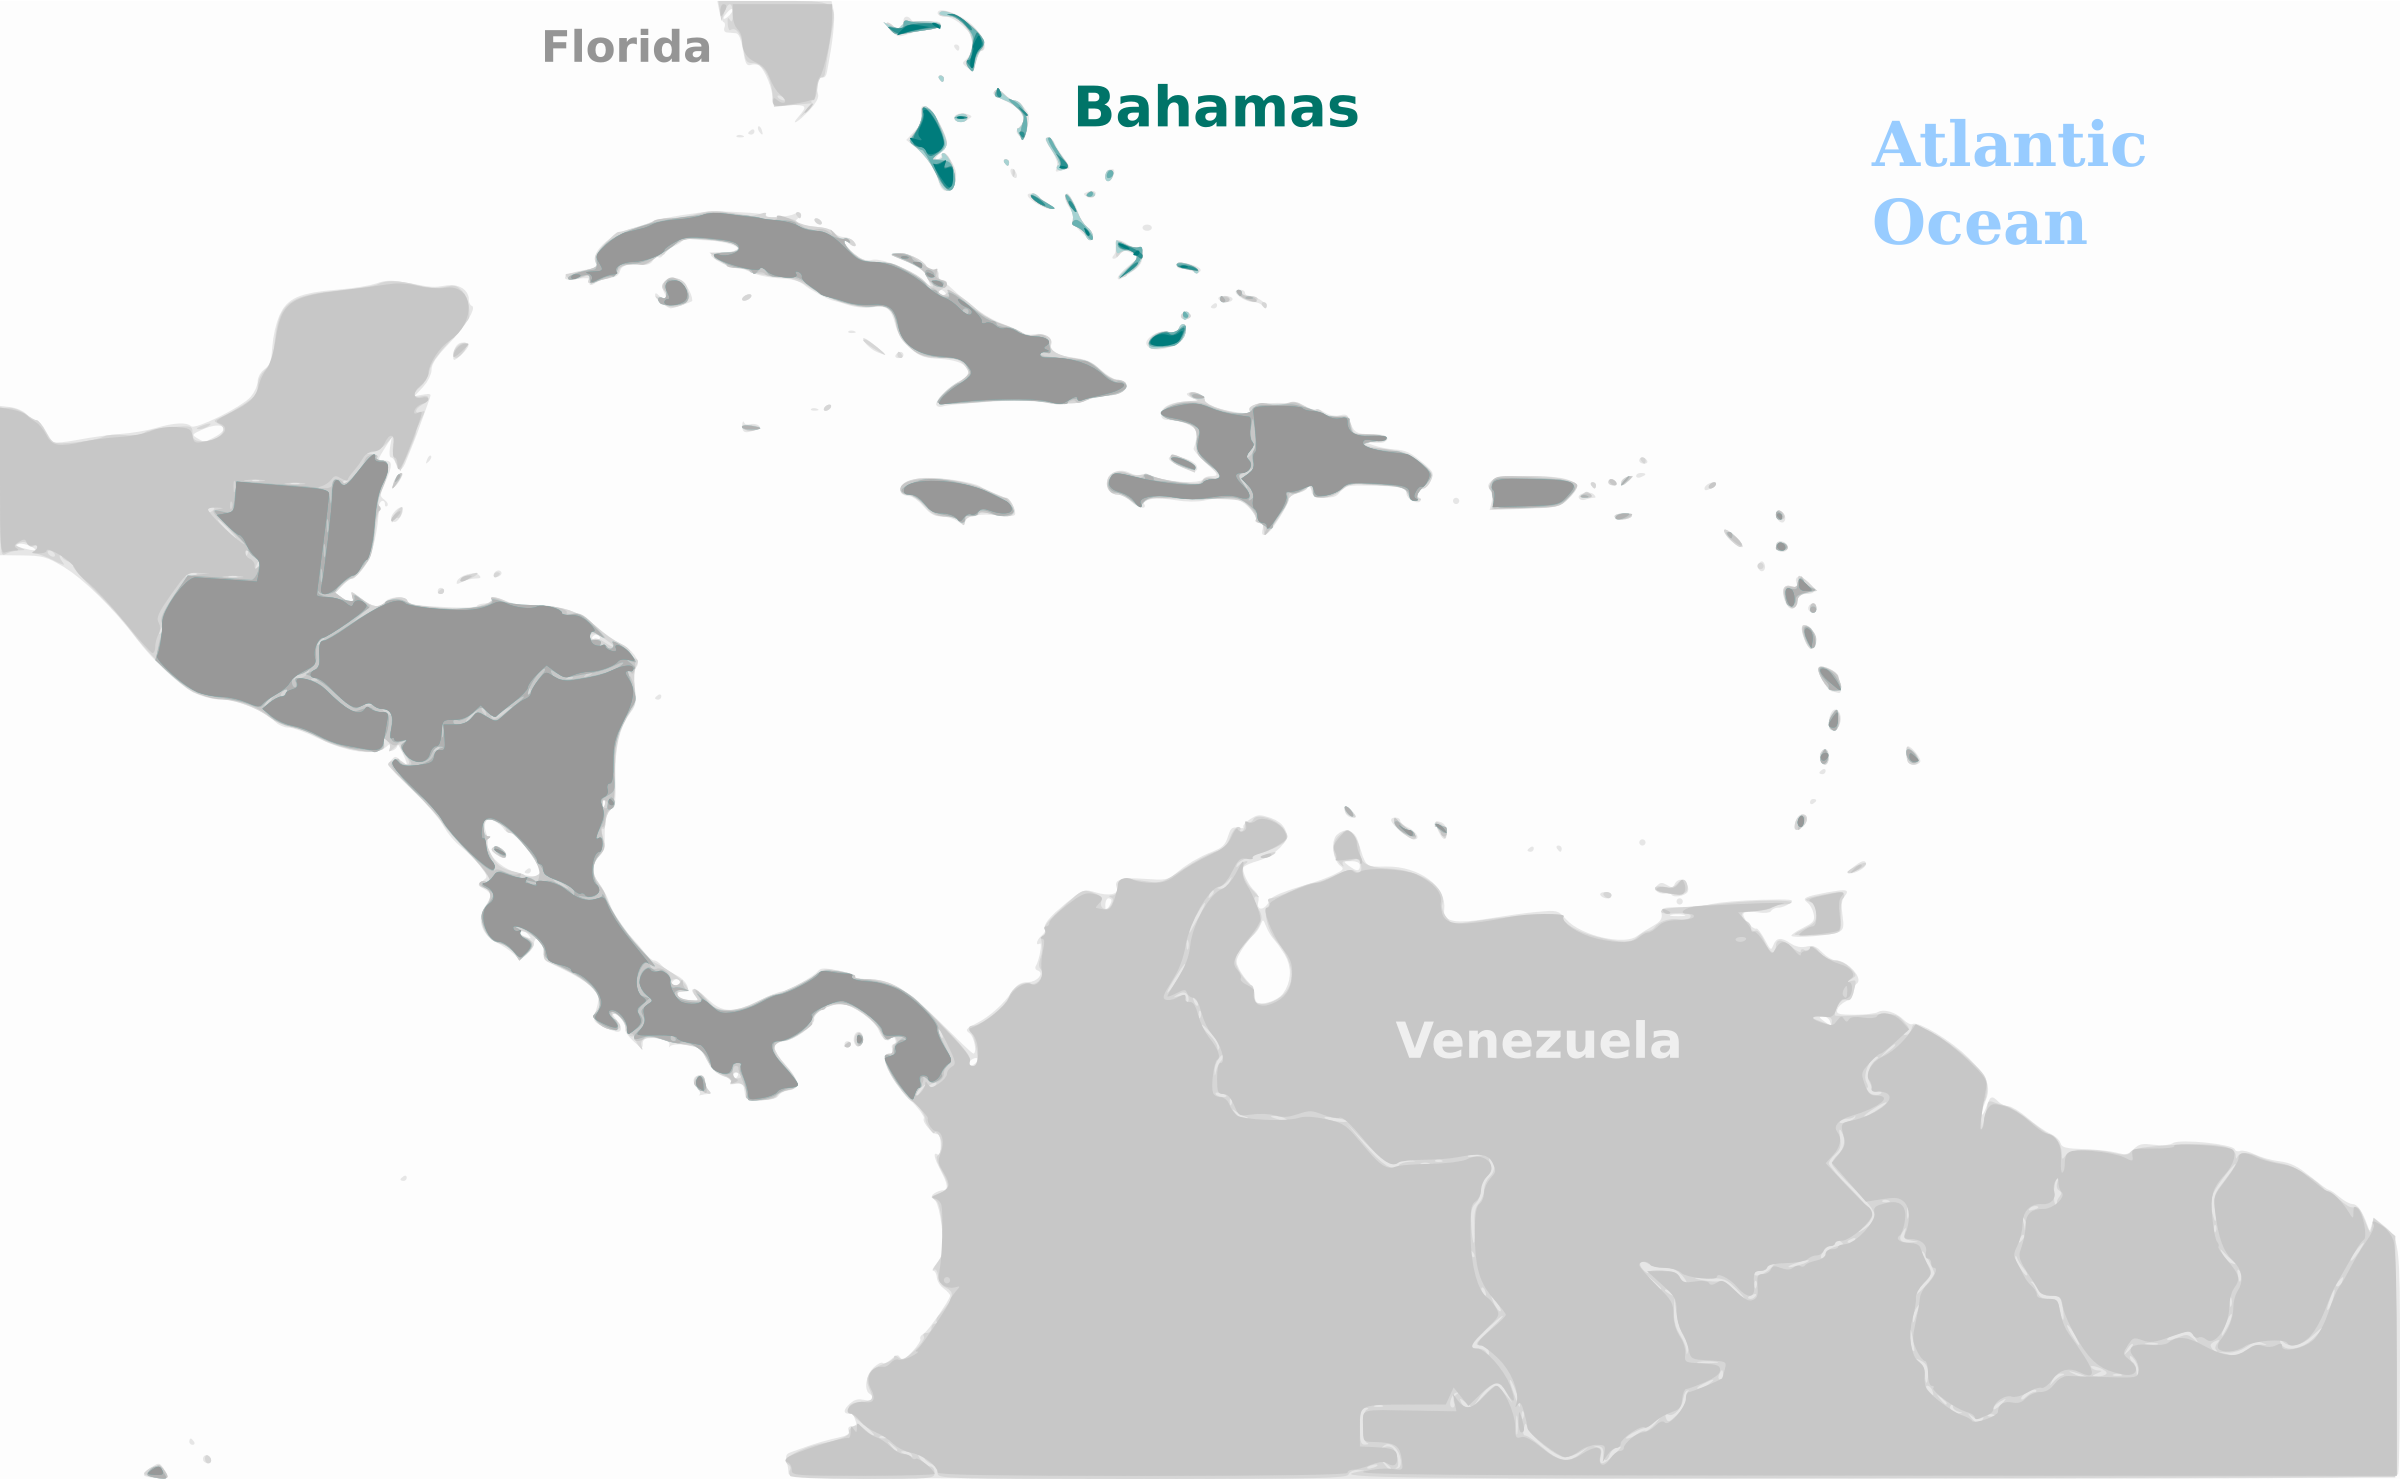 Bahamas location label by wpclipart